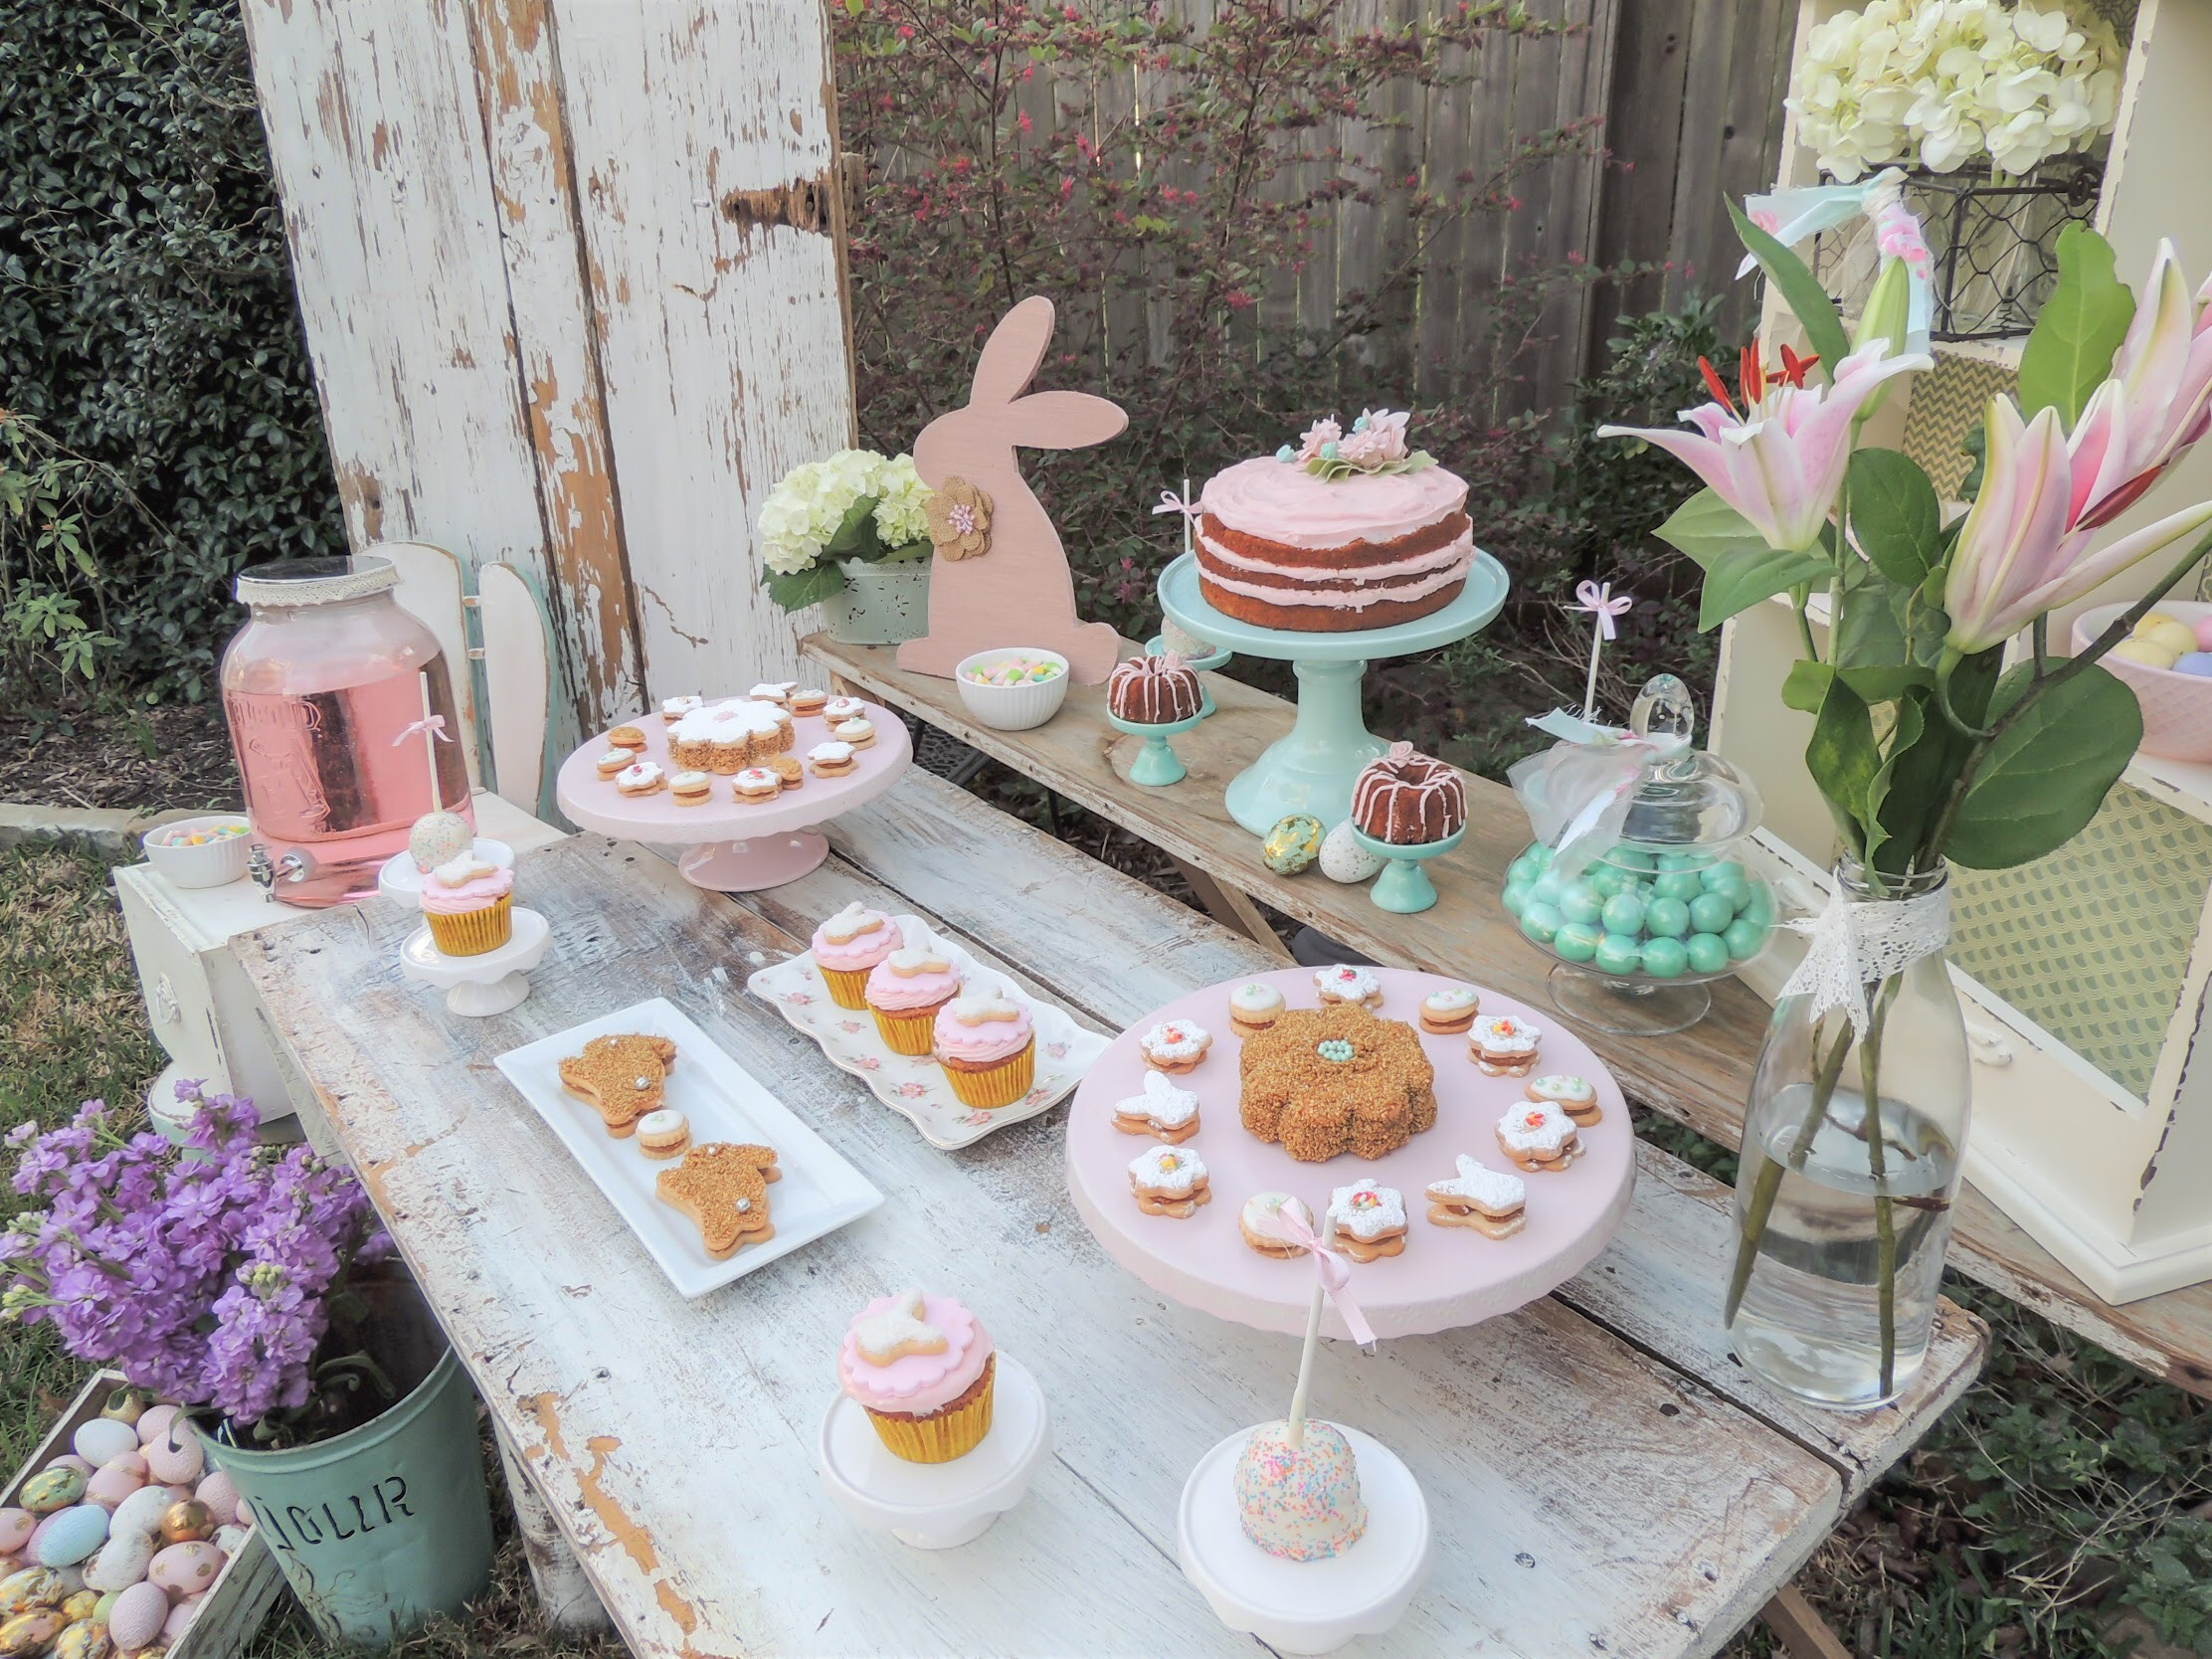 Love the idea of hosting a desserts party for Easter